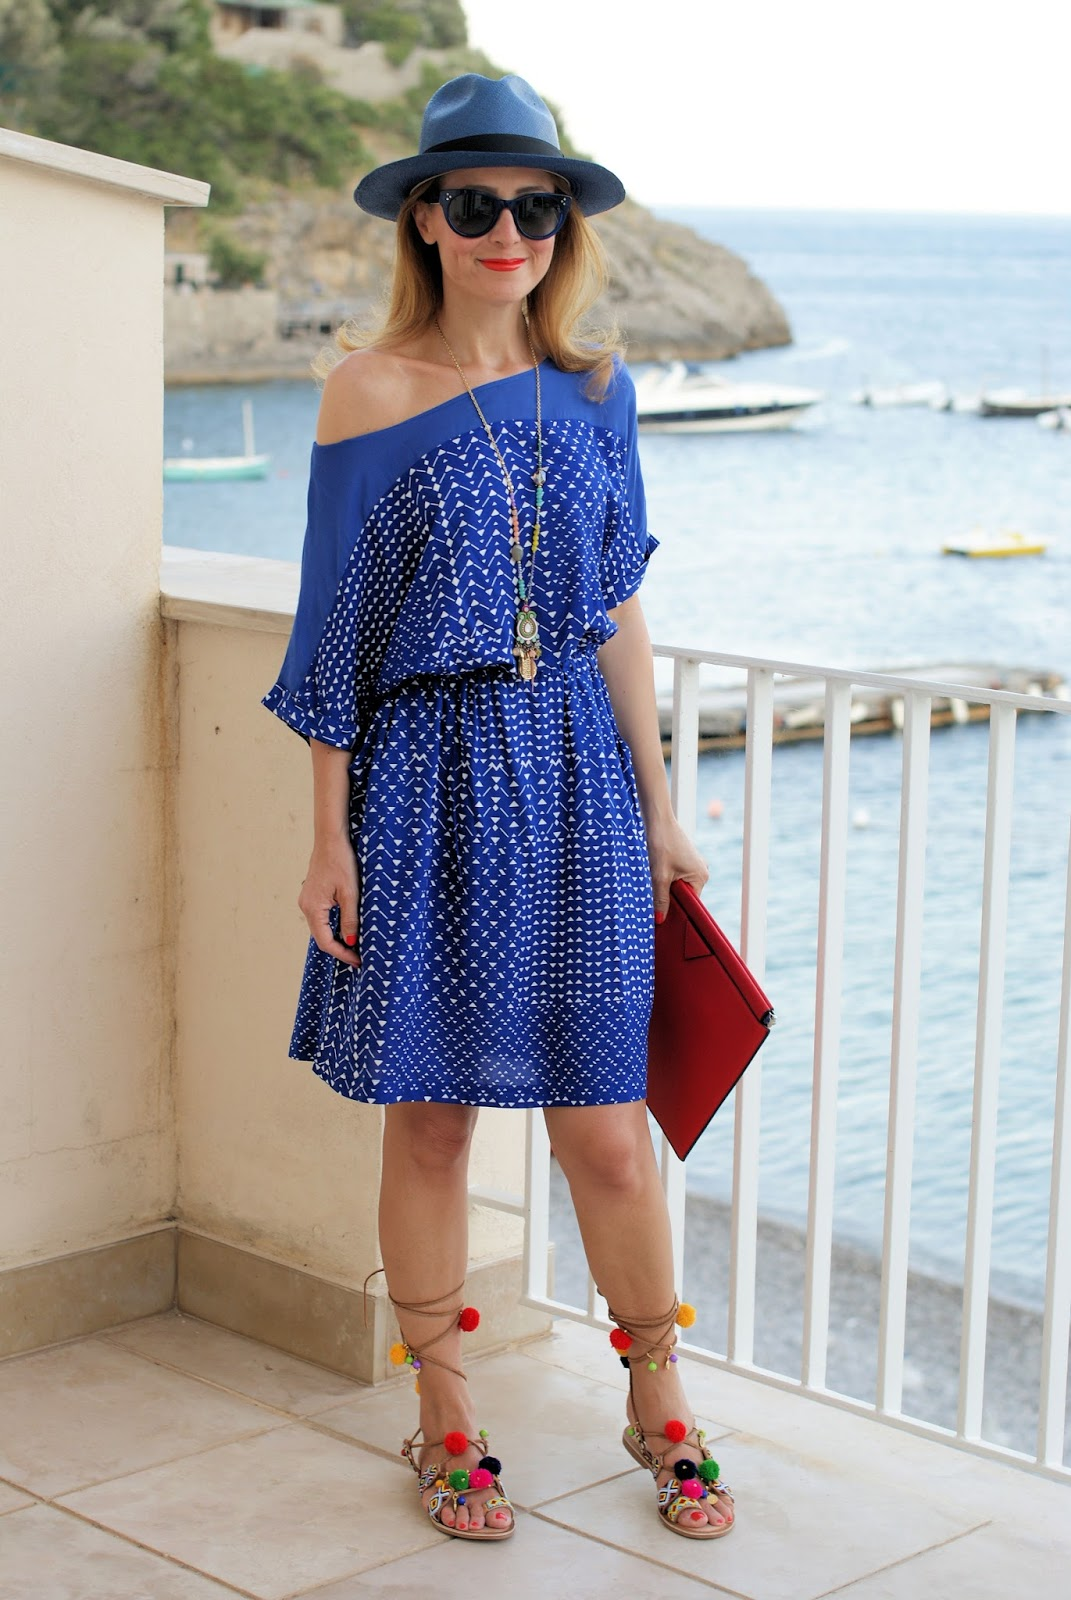 Gioseppo Omahas sandals and Paramita Fabrina dress on Fashion and Cookies fashion blog, fashion blogger style